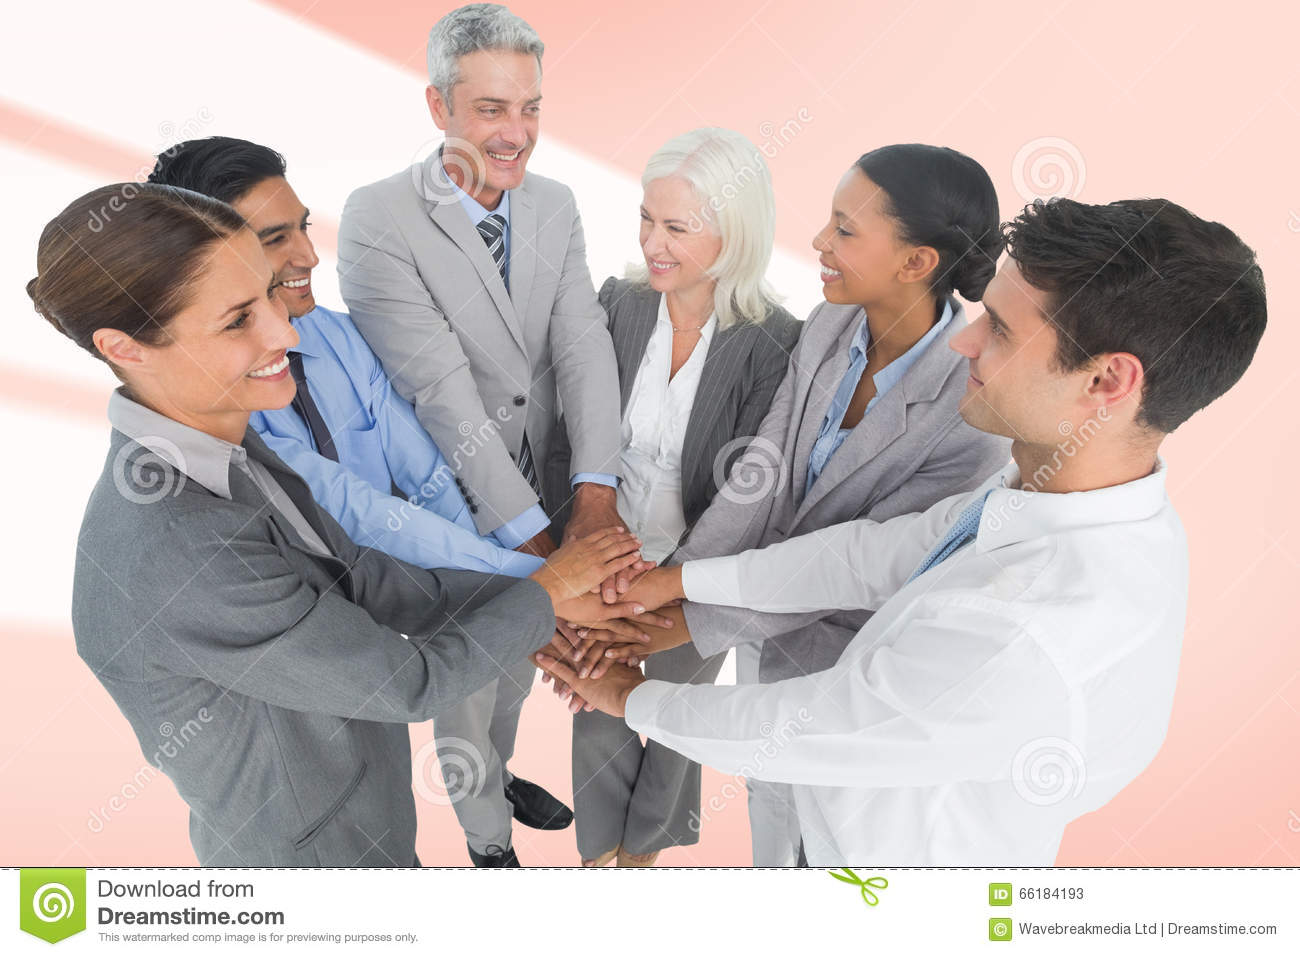 Composite image of executives holding hands together in office